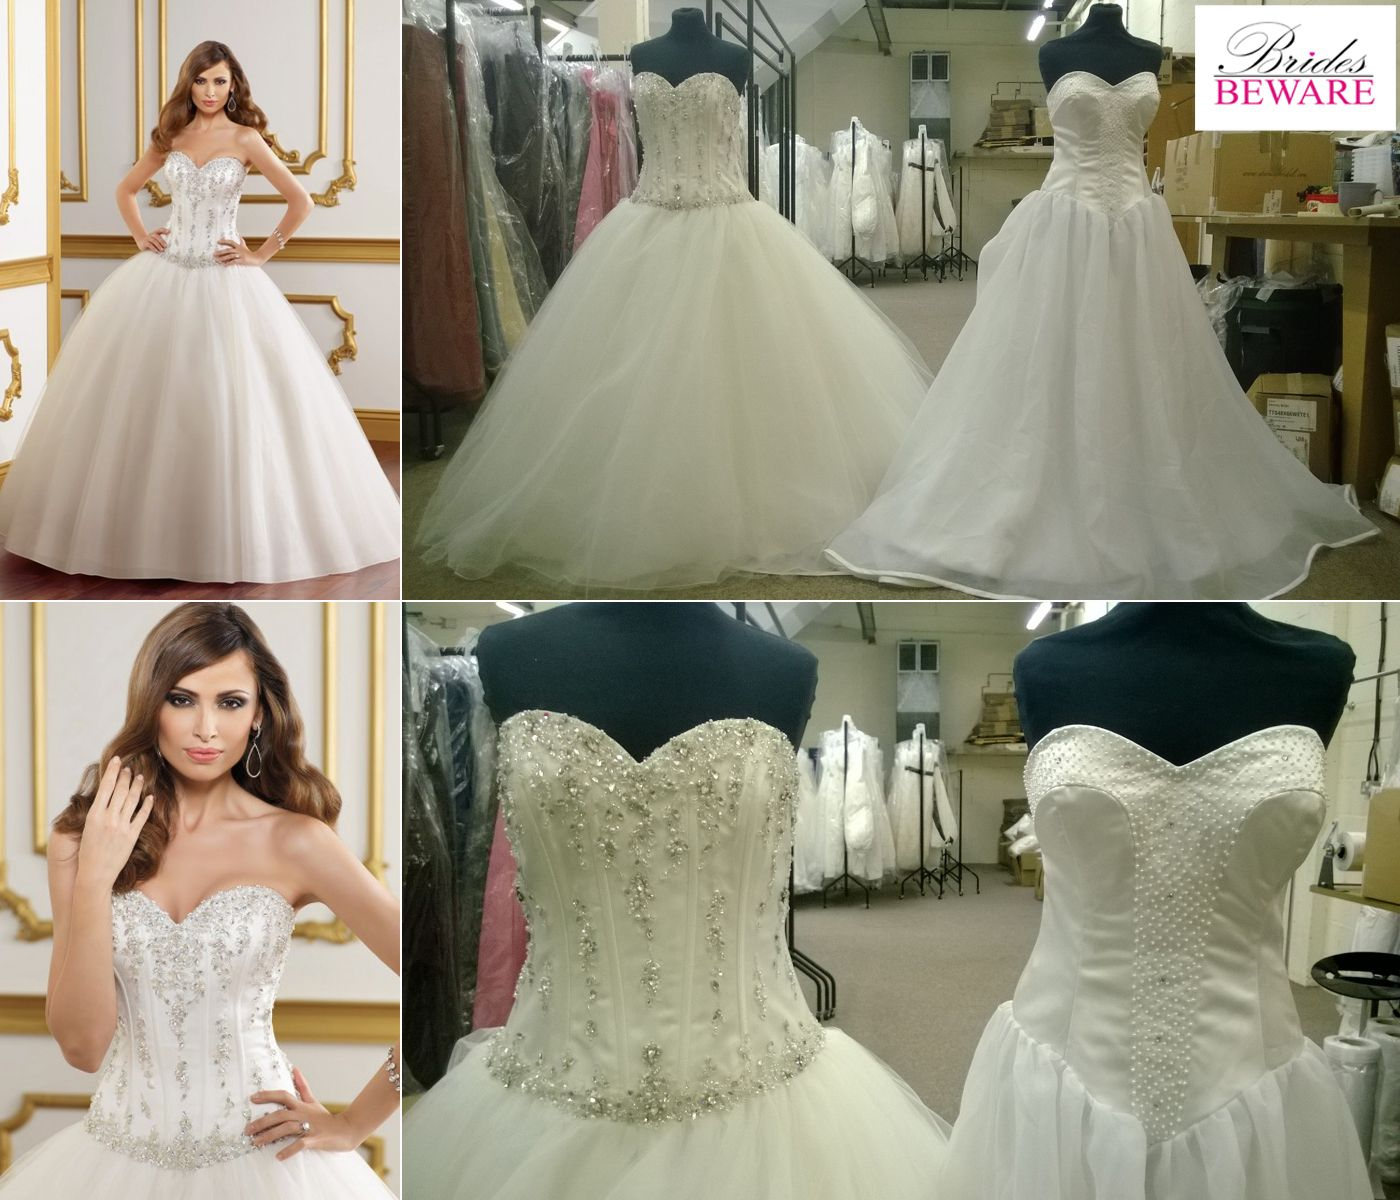 Beau Fake Mori Lee Wedding Dress